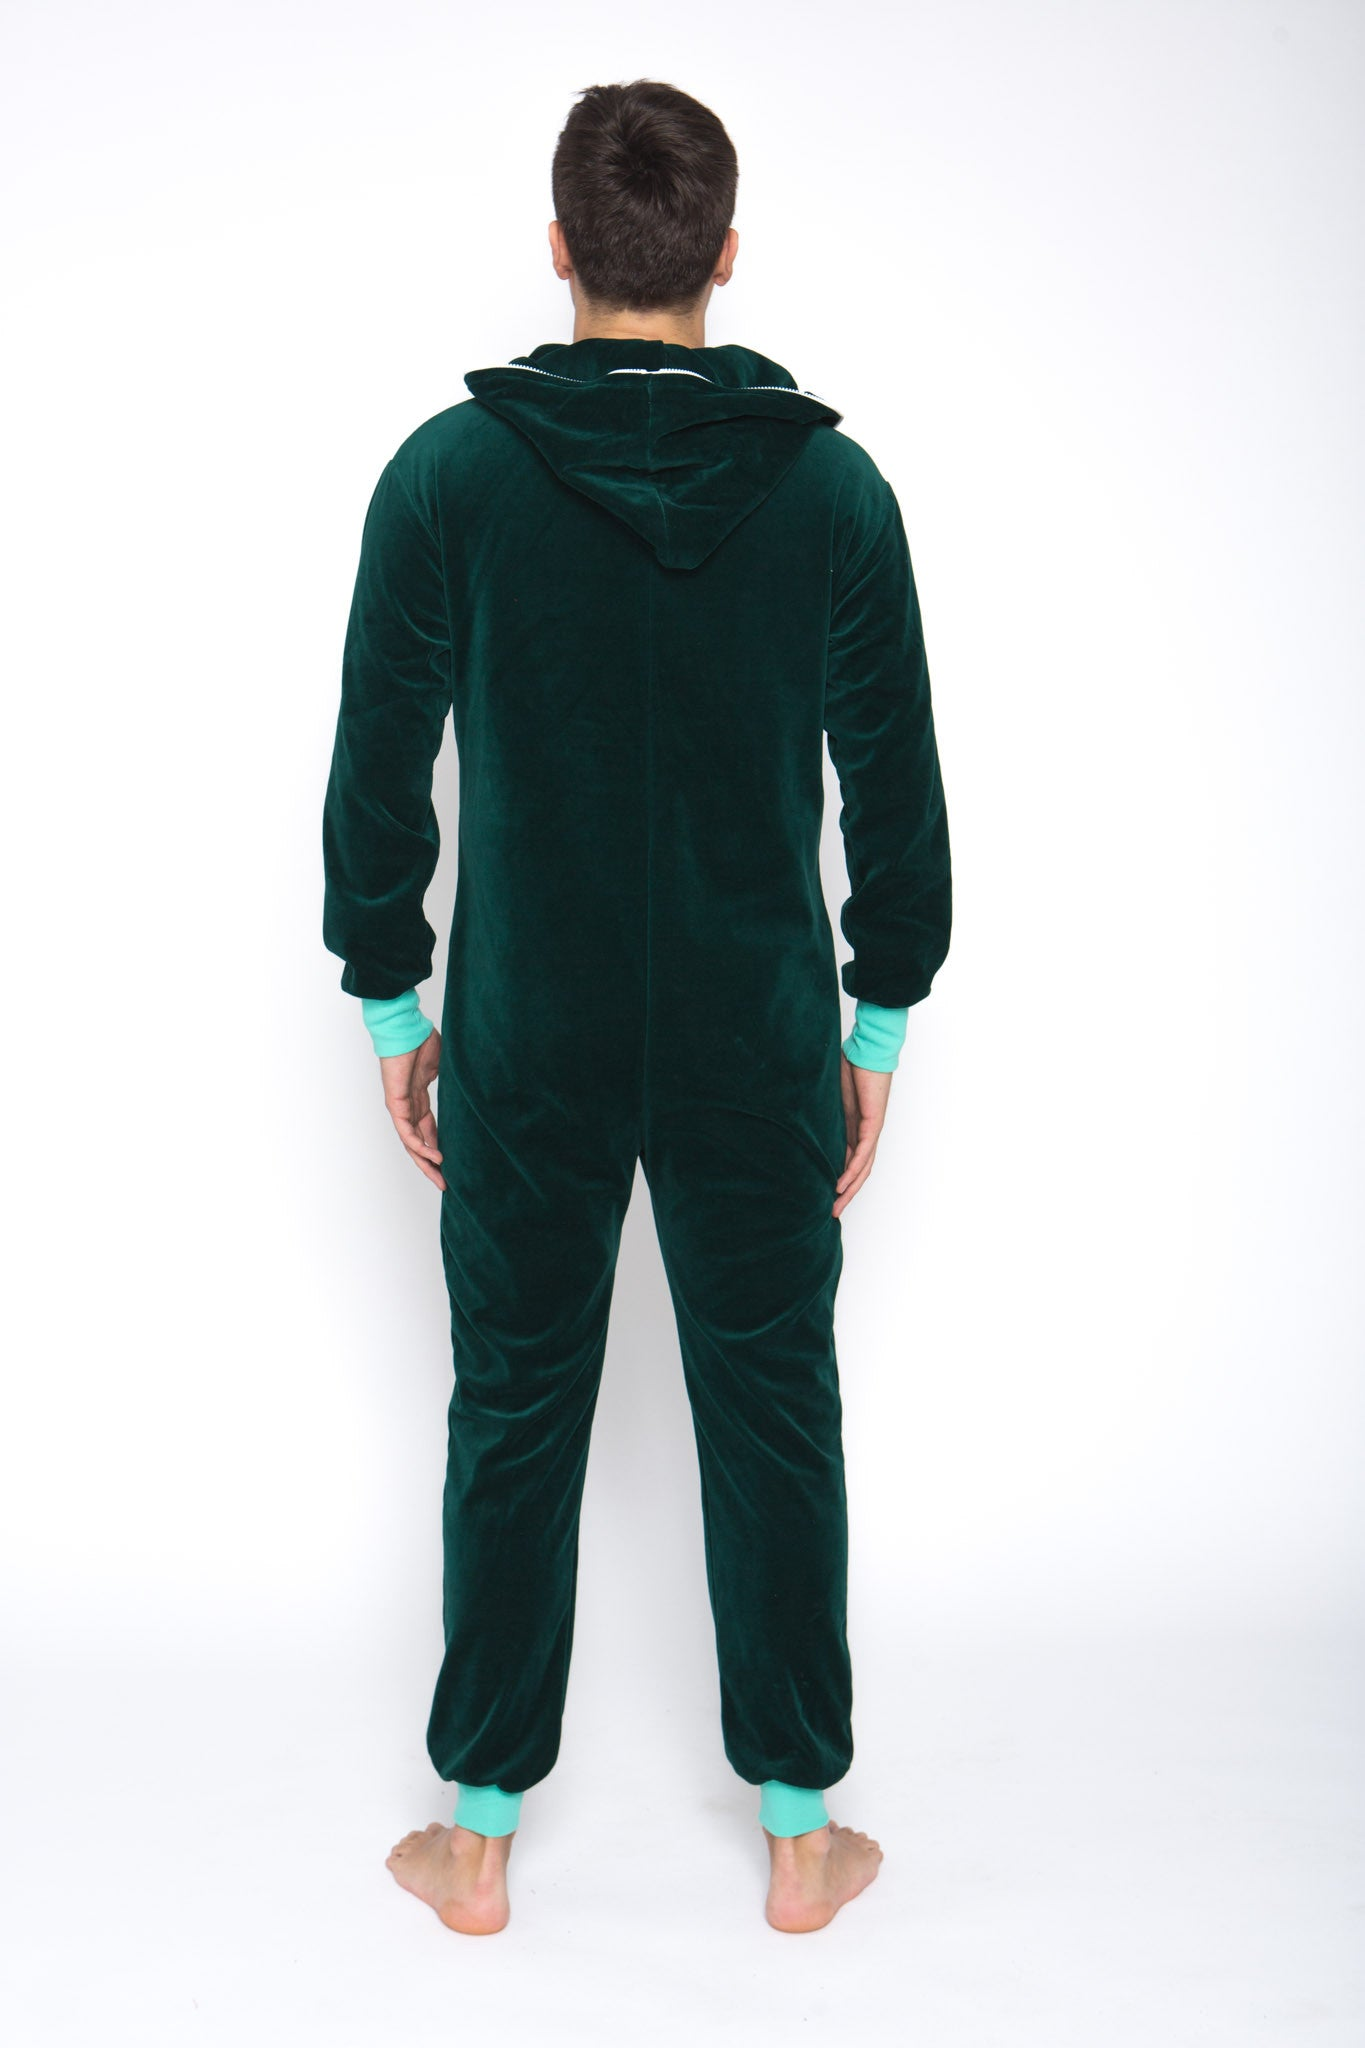 Sofa Killer emerald green velours men onesie